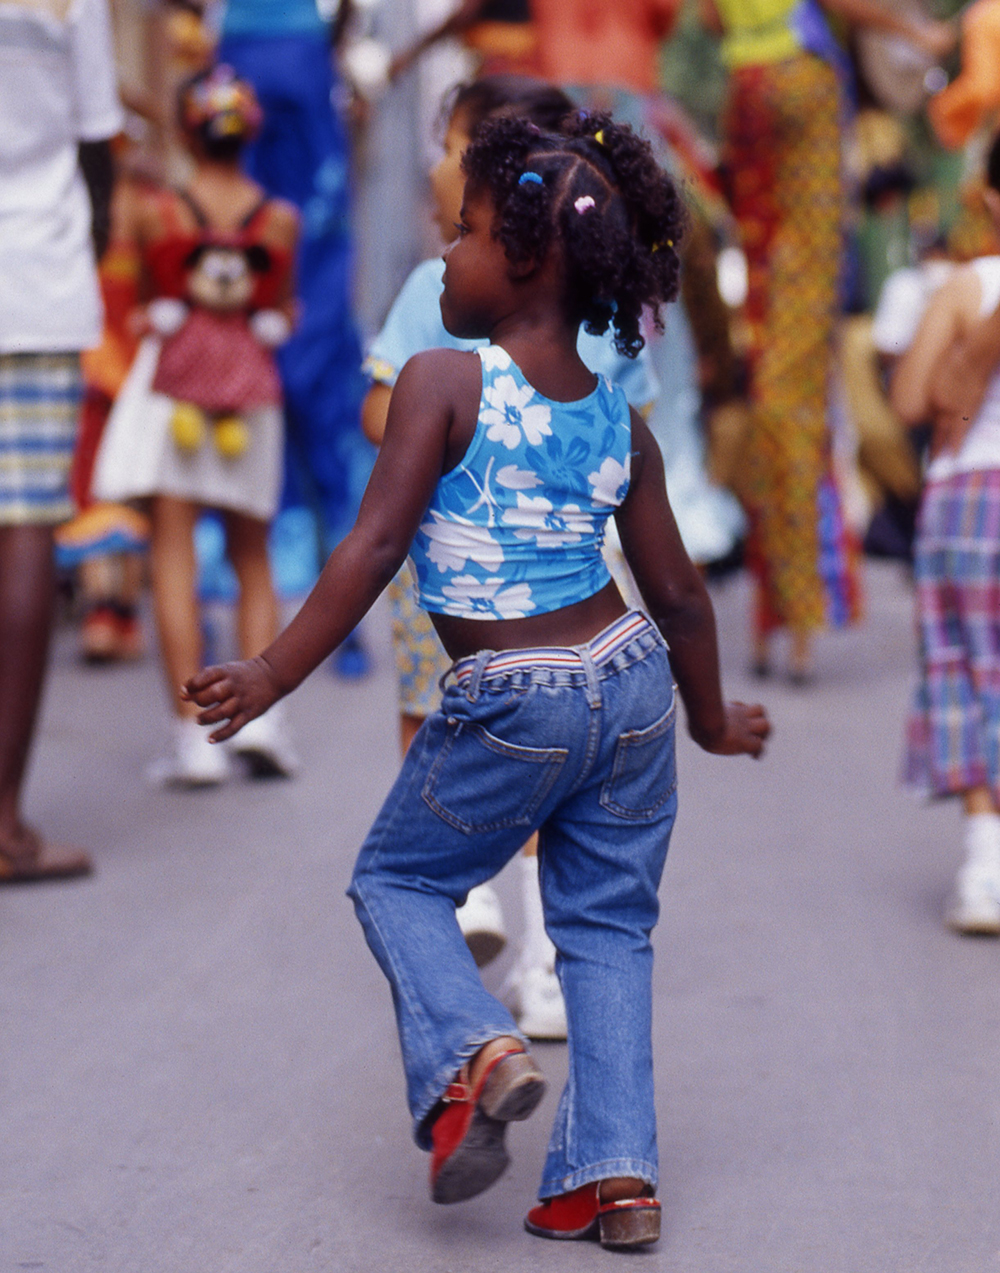 Child Dancing in Street